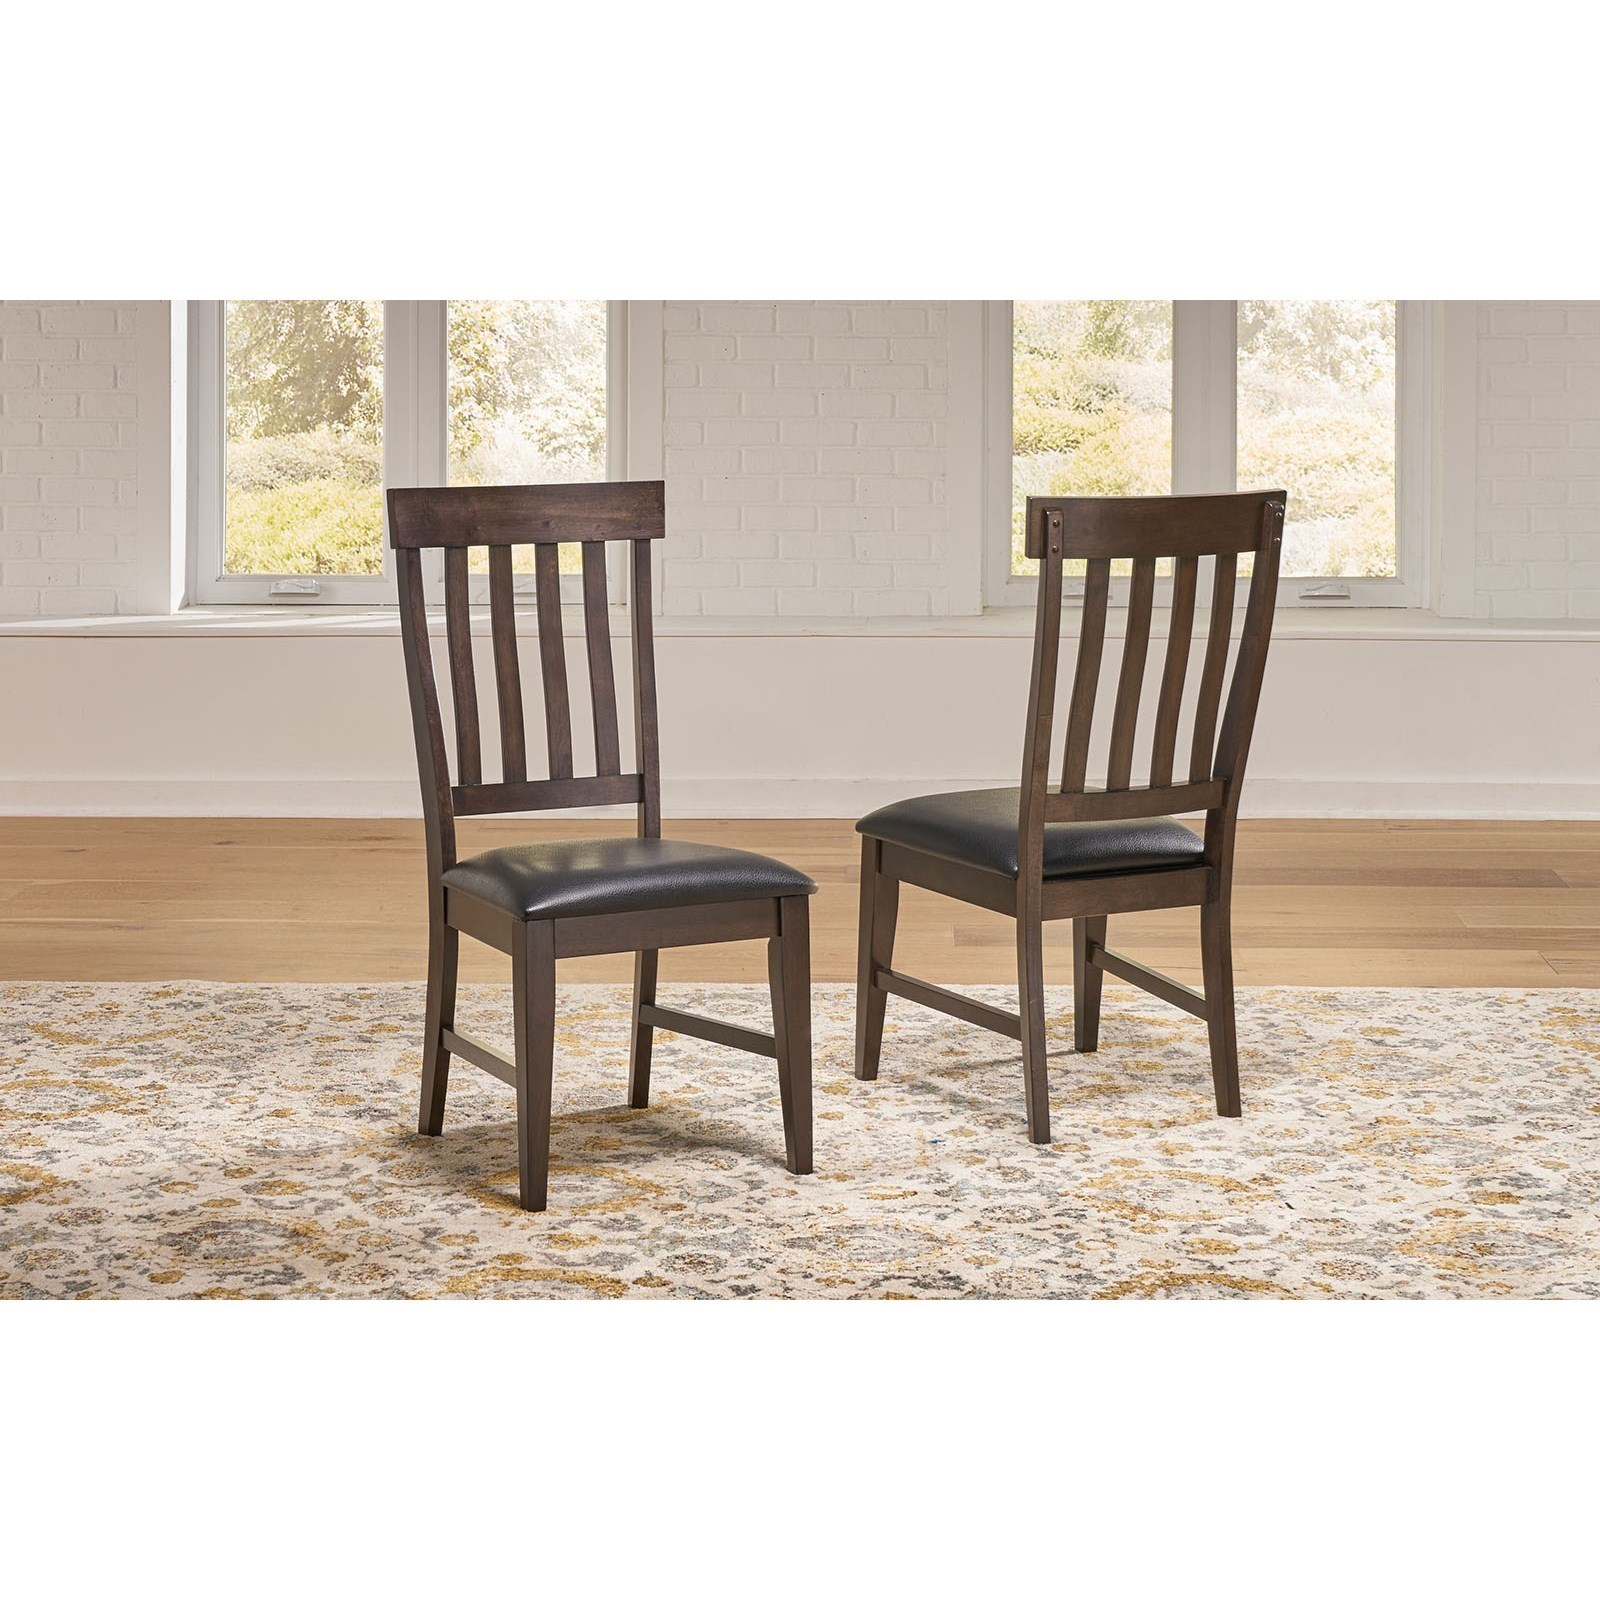 Solid Wood Transitional Slatback Side Chair with Upholstered Seat